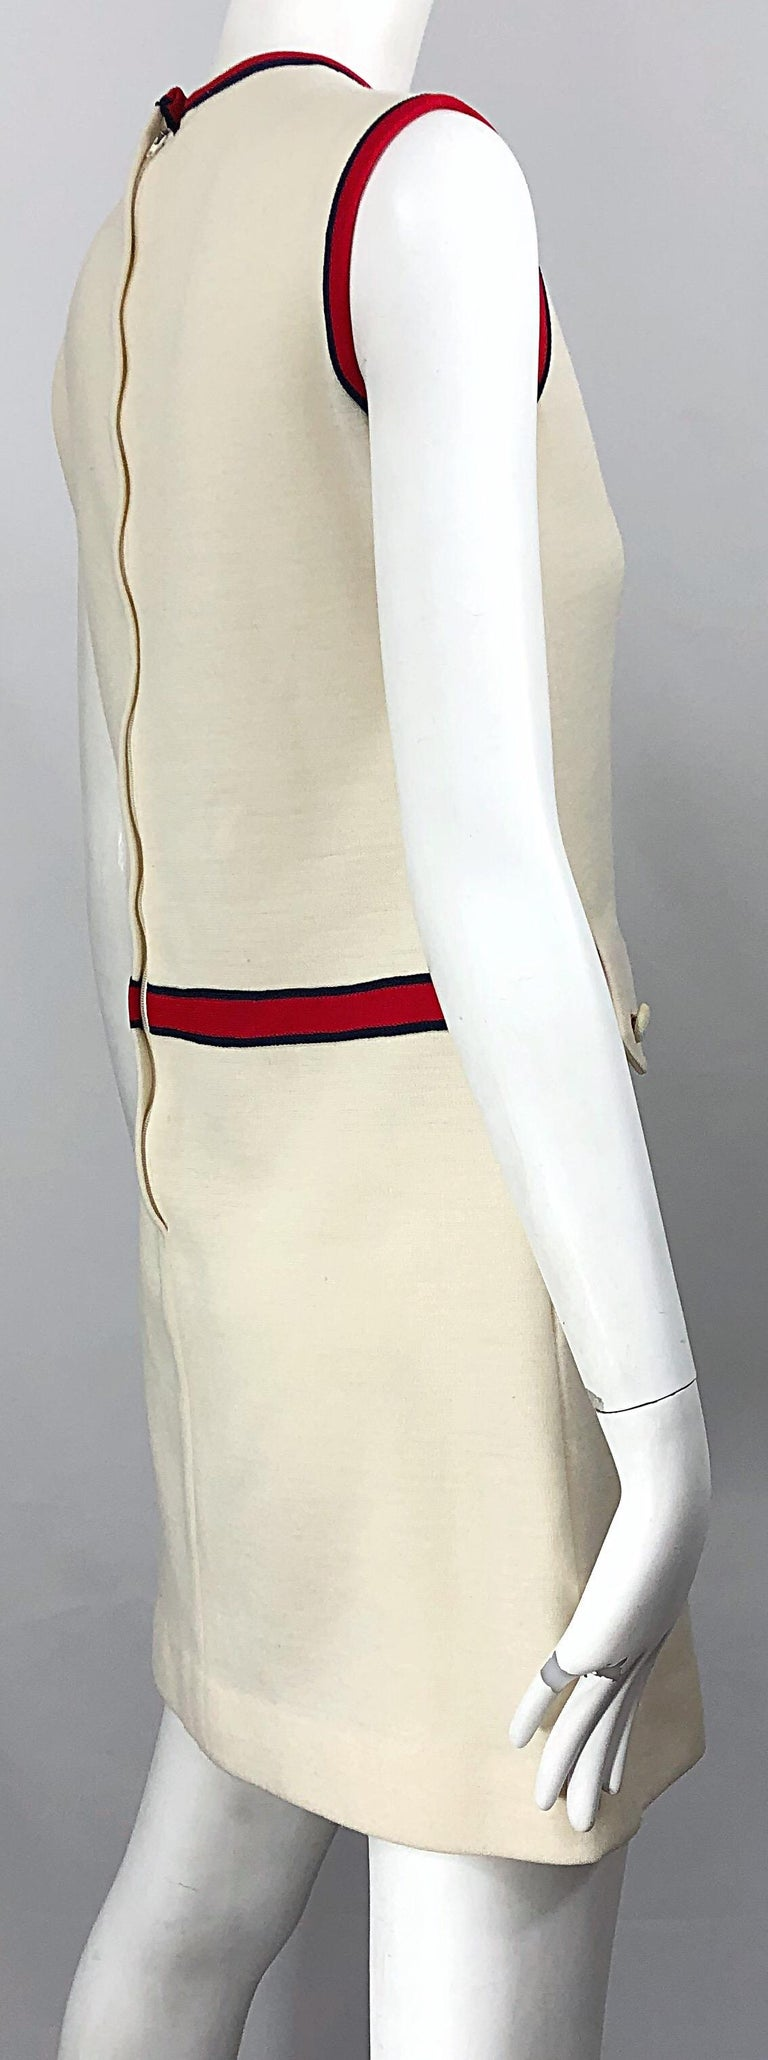 Chic 1960s Ivory + Navy Blue + Red Knit Vintage 60s Nautical Mod Shift Dress For Sale 5